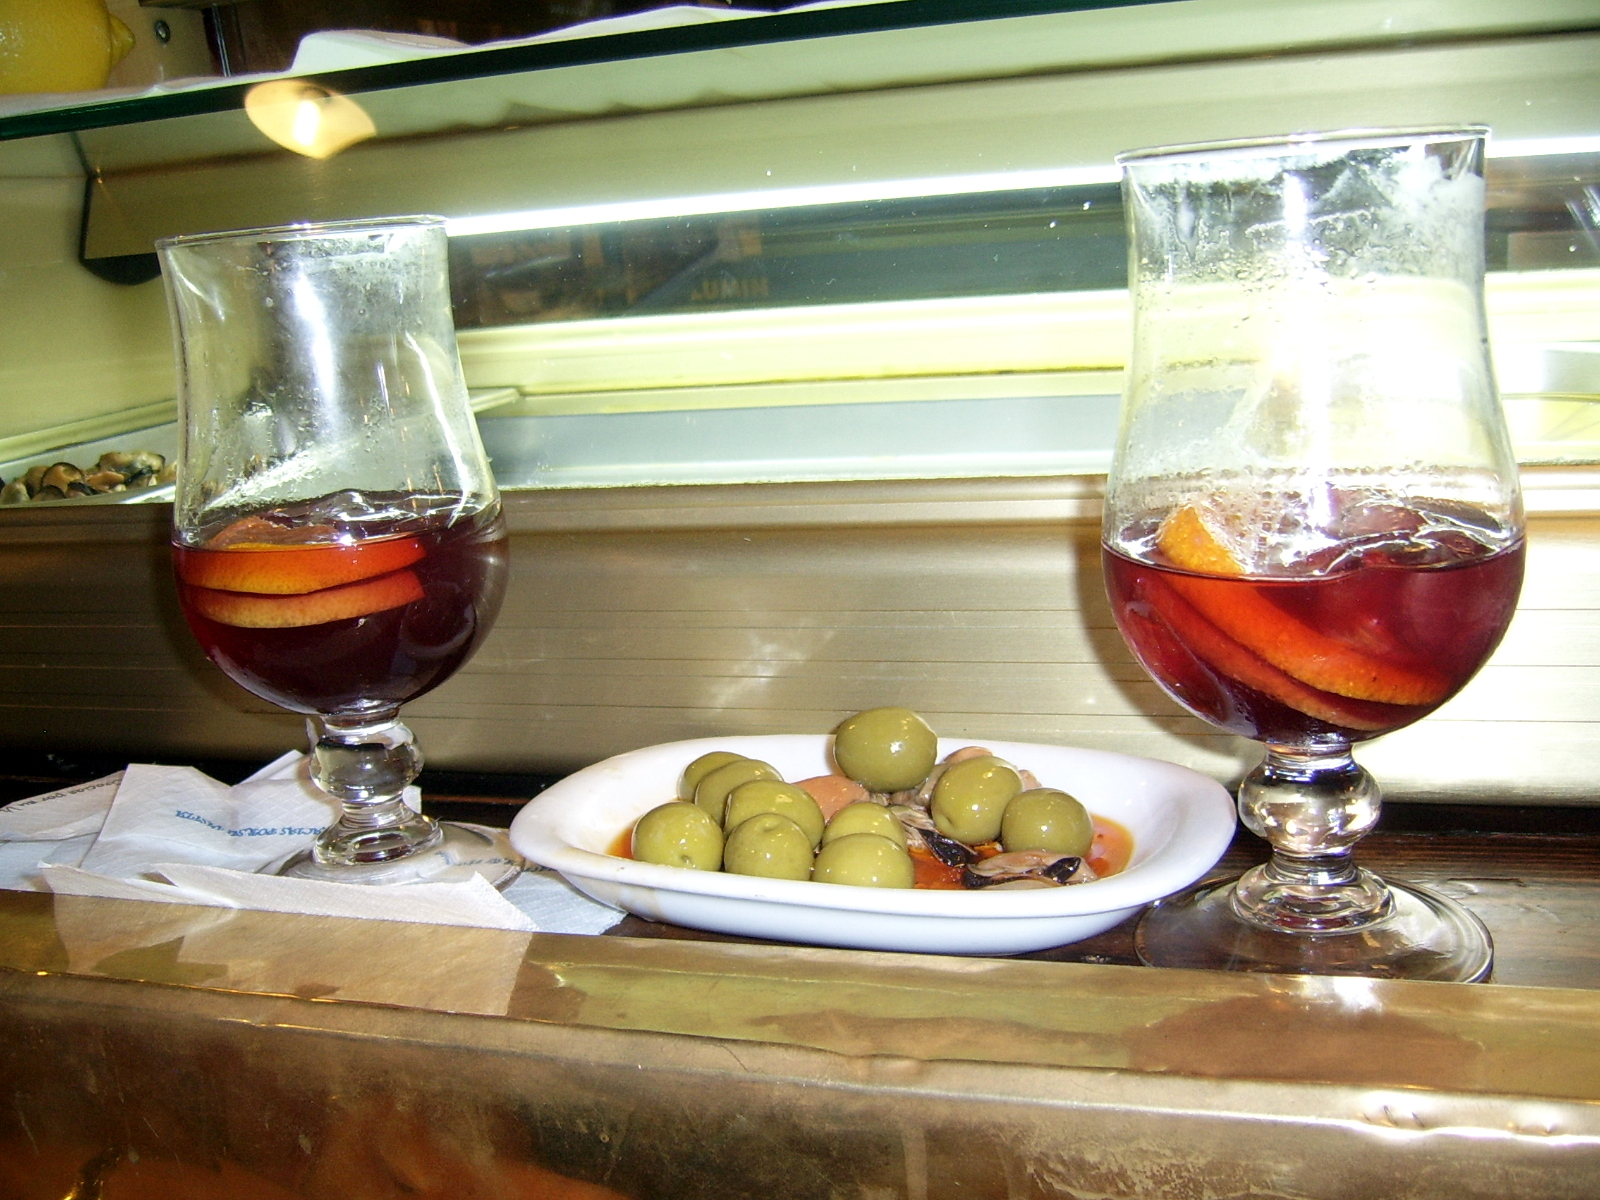 Sangria and basic tapas of olives and marinated muscles at Casa Patas